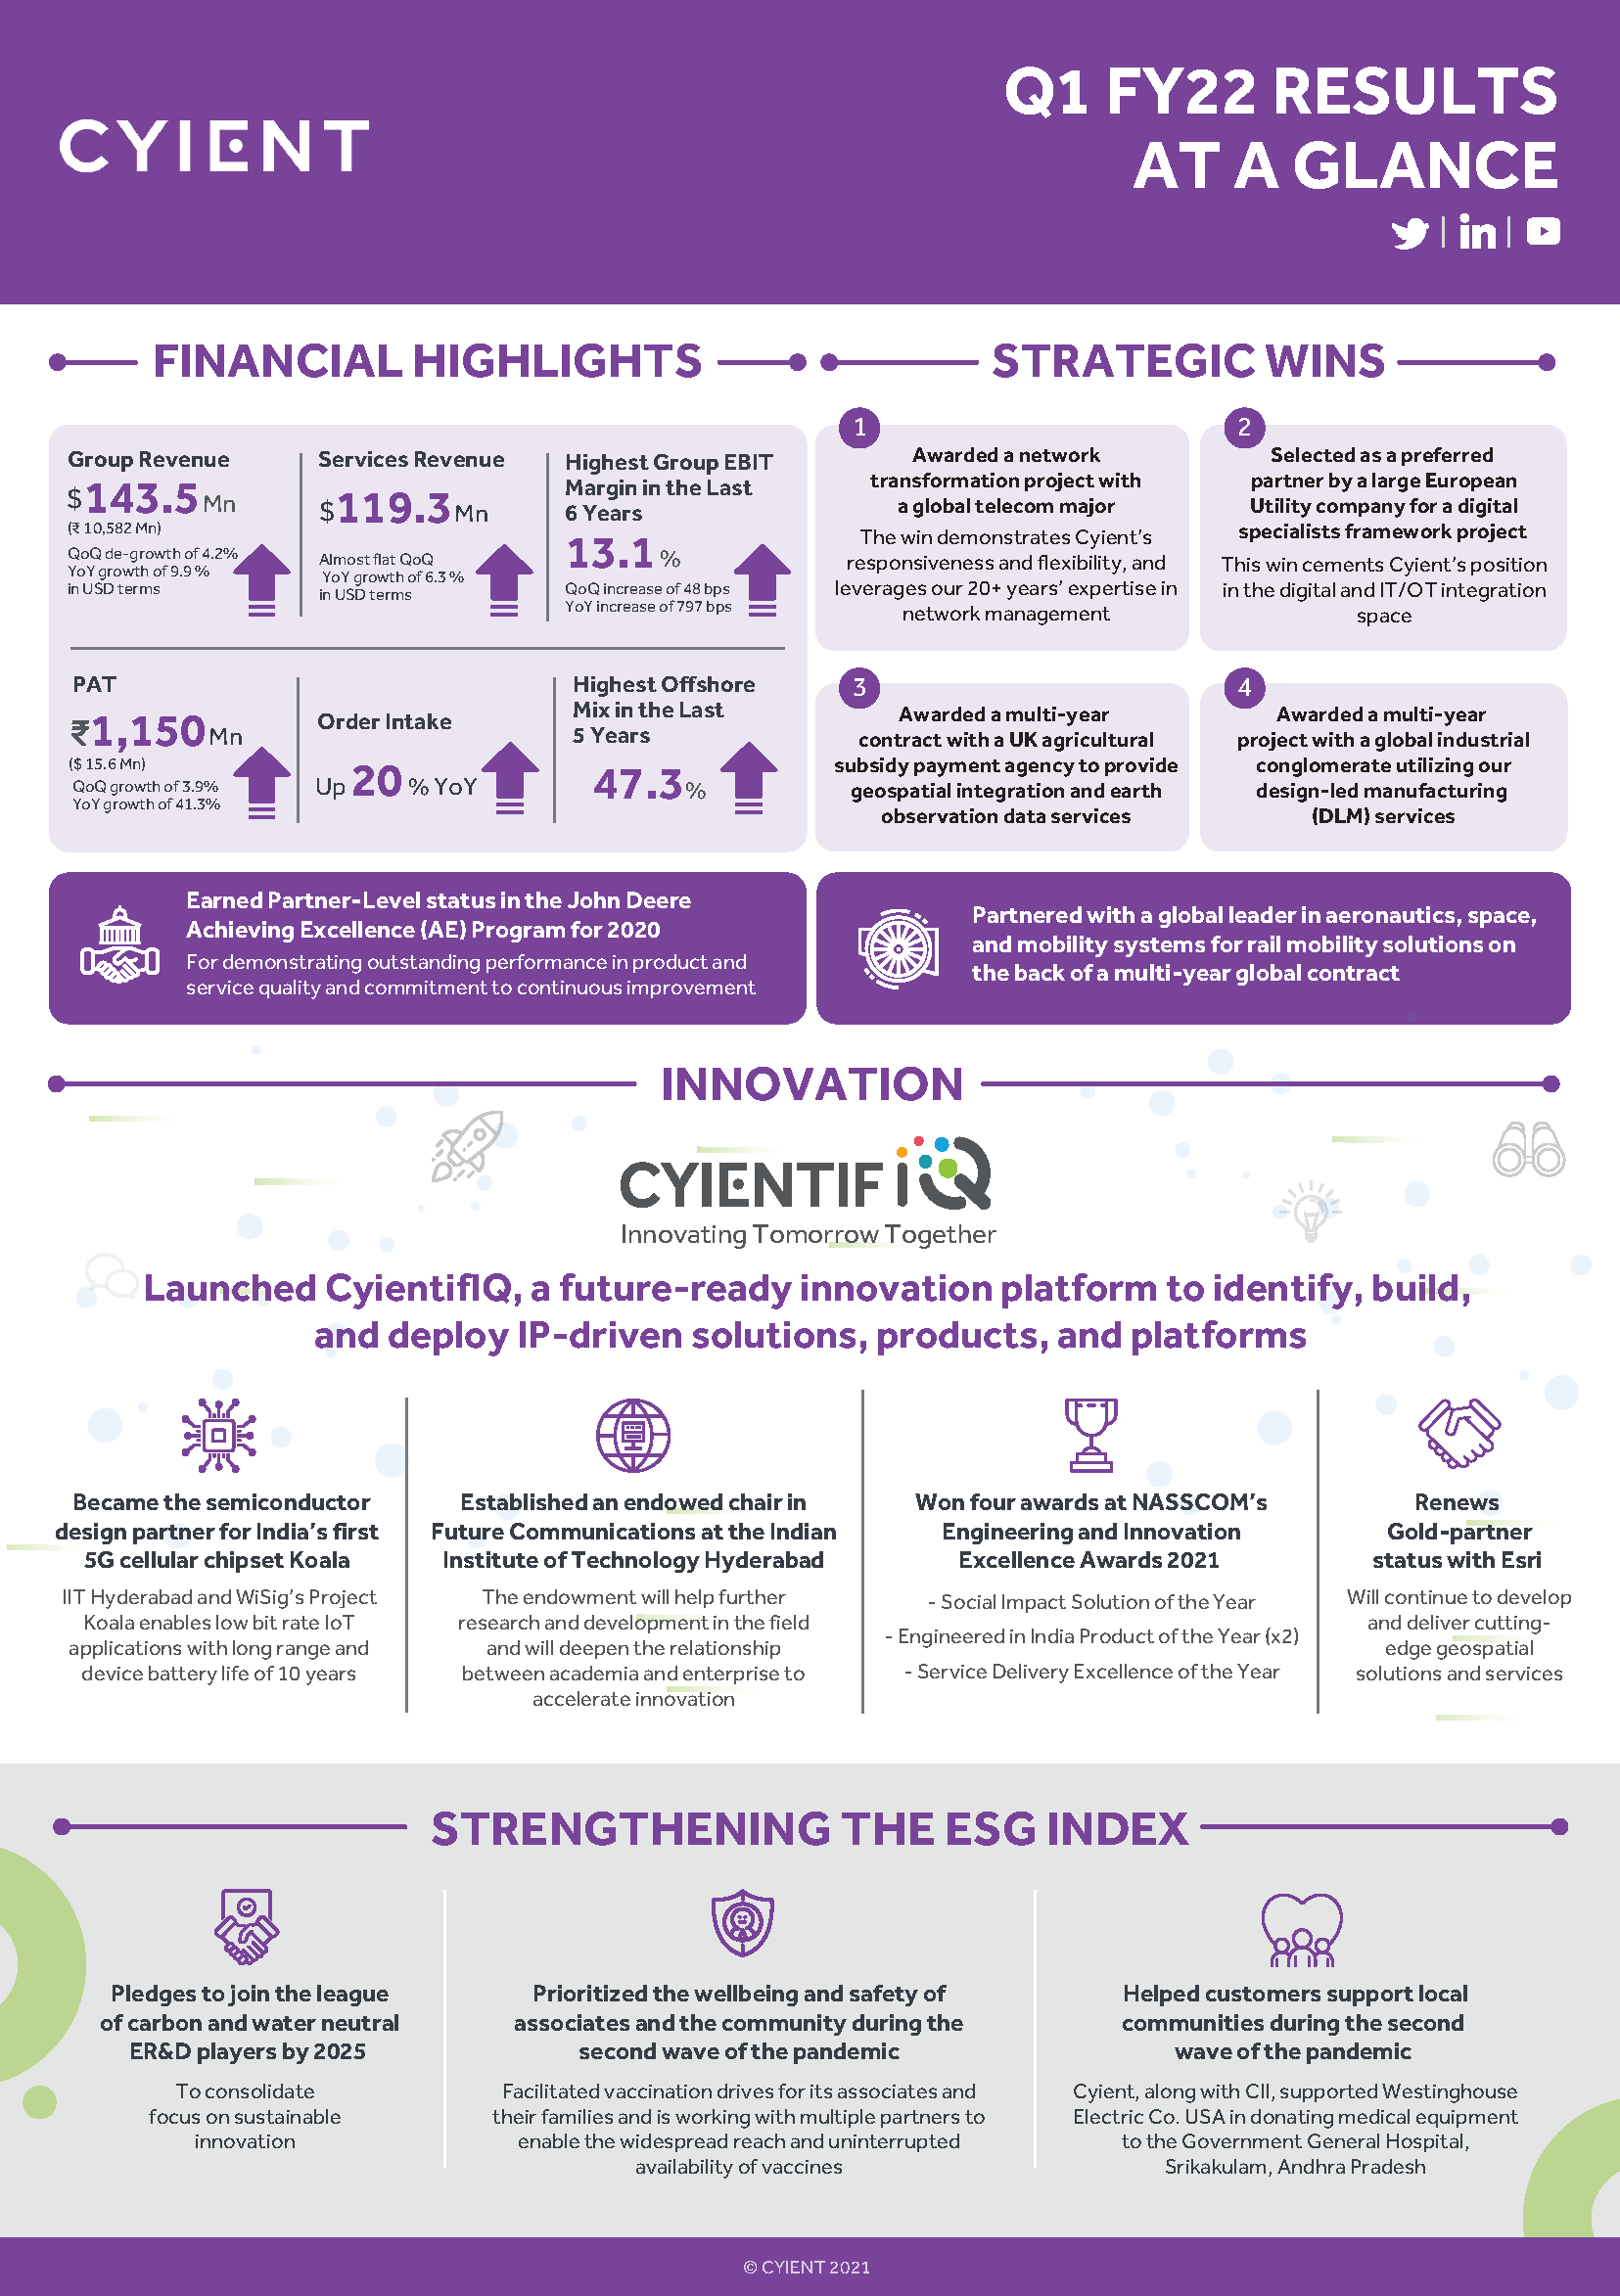 1-Cyient Q1 FY22 Highlights Infographic